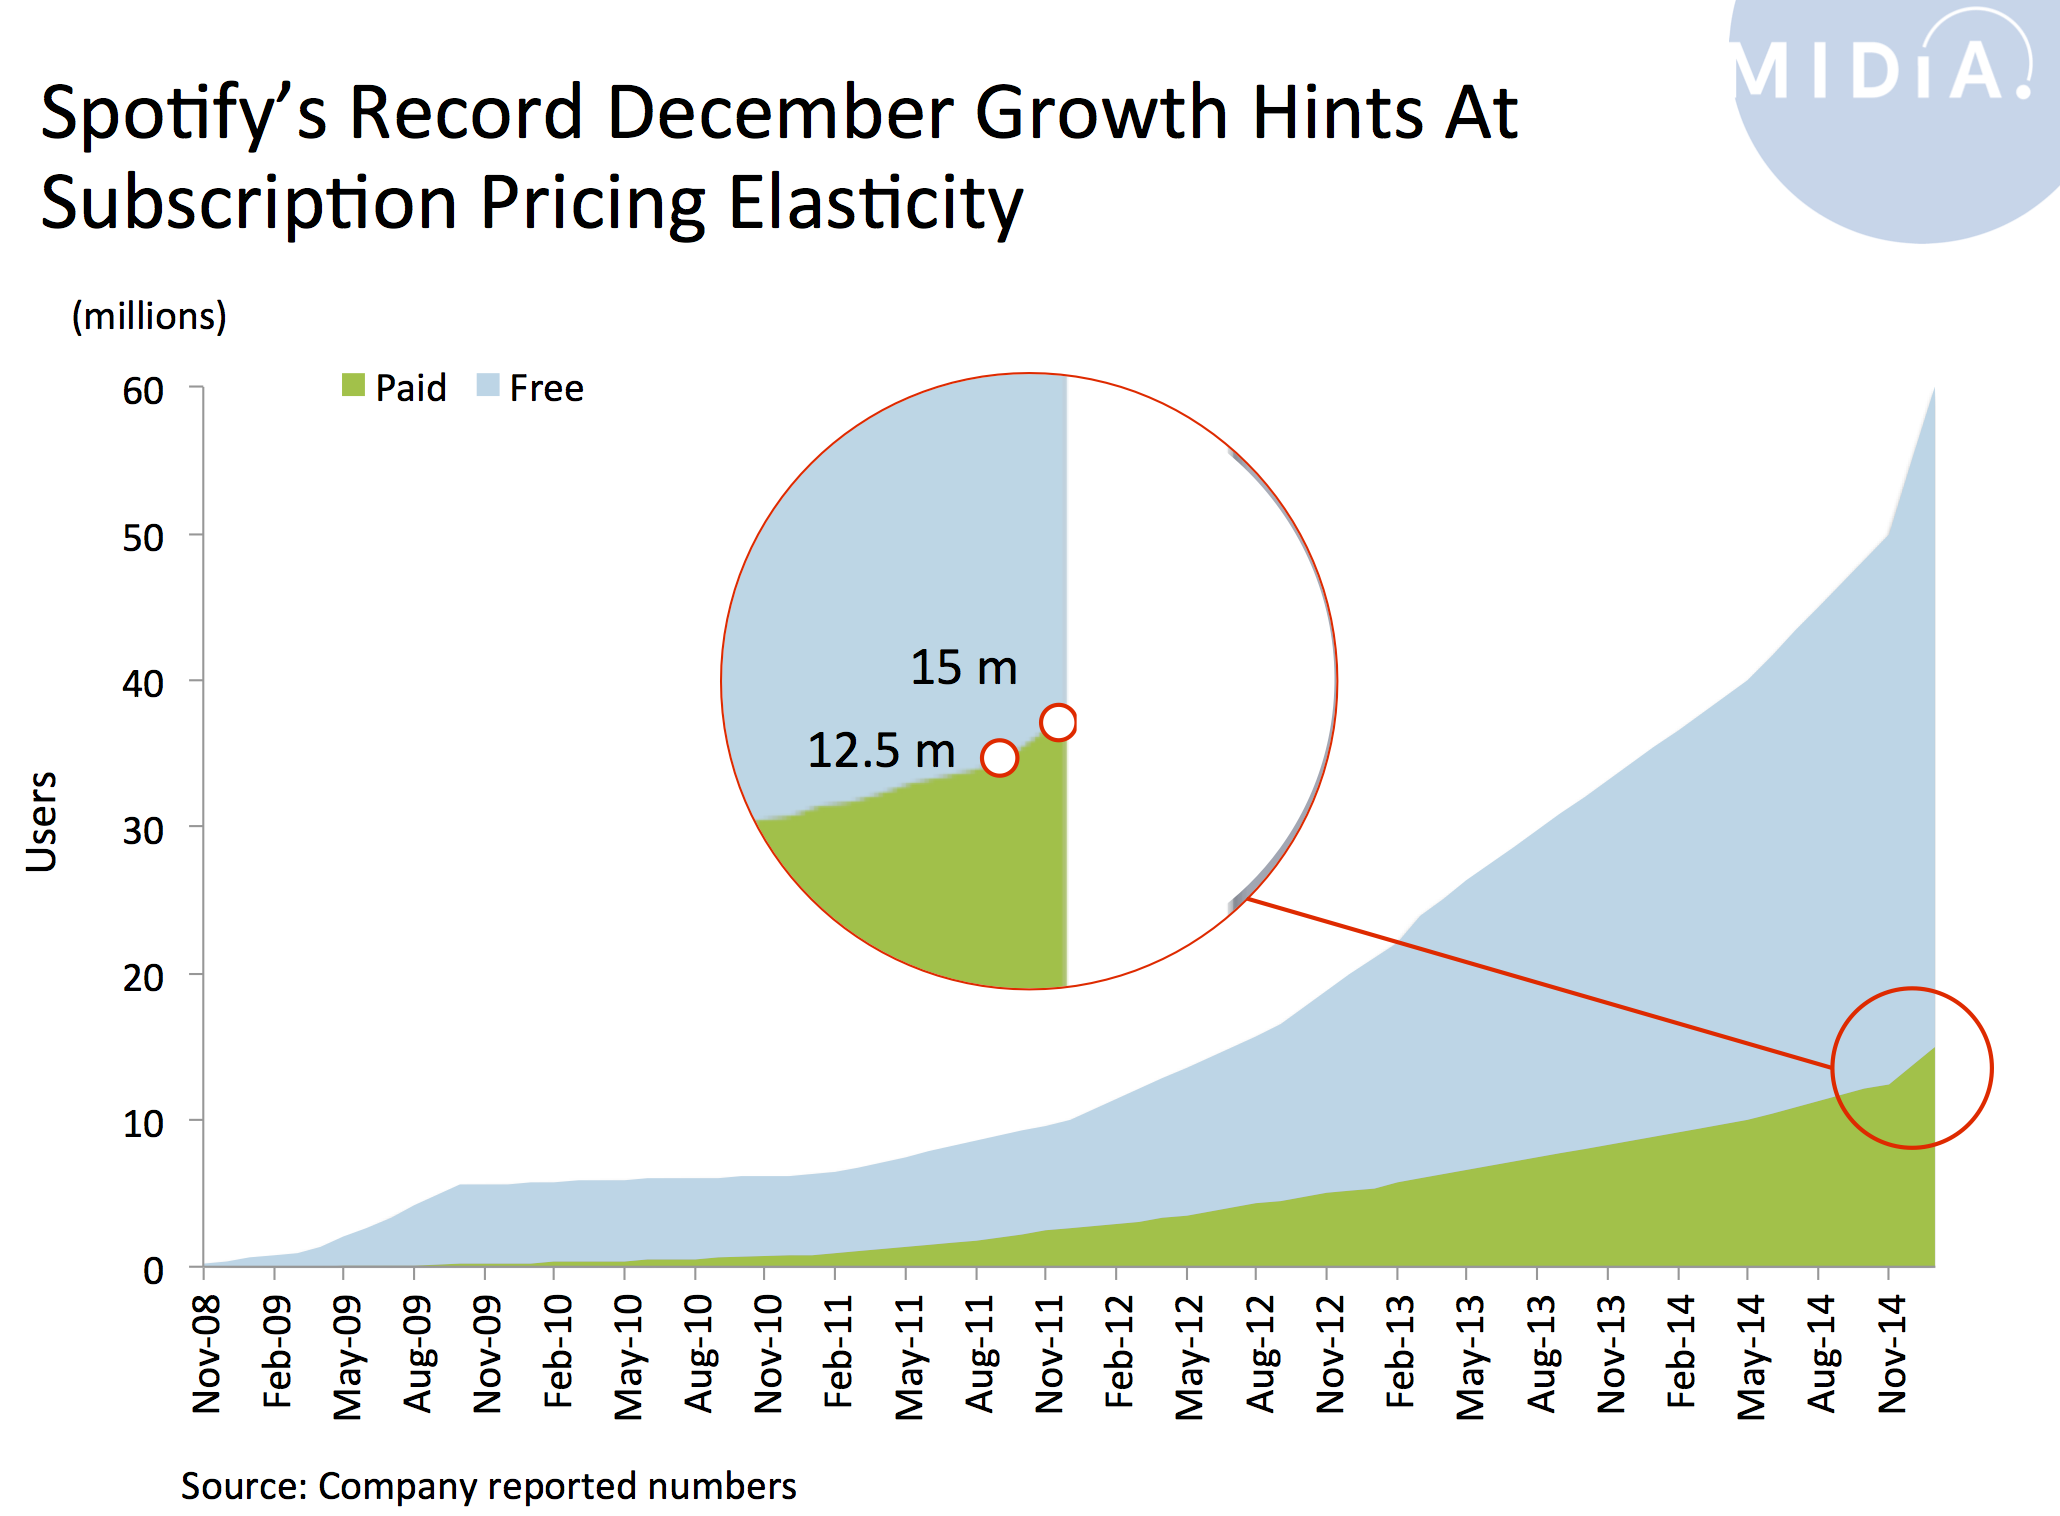 What Spotify's December Growth Tells Us About Pricing